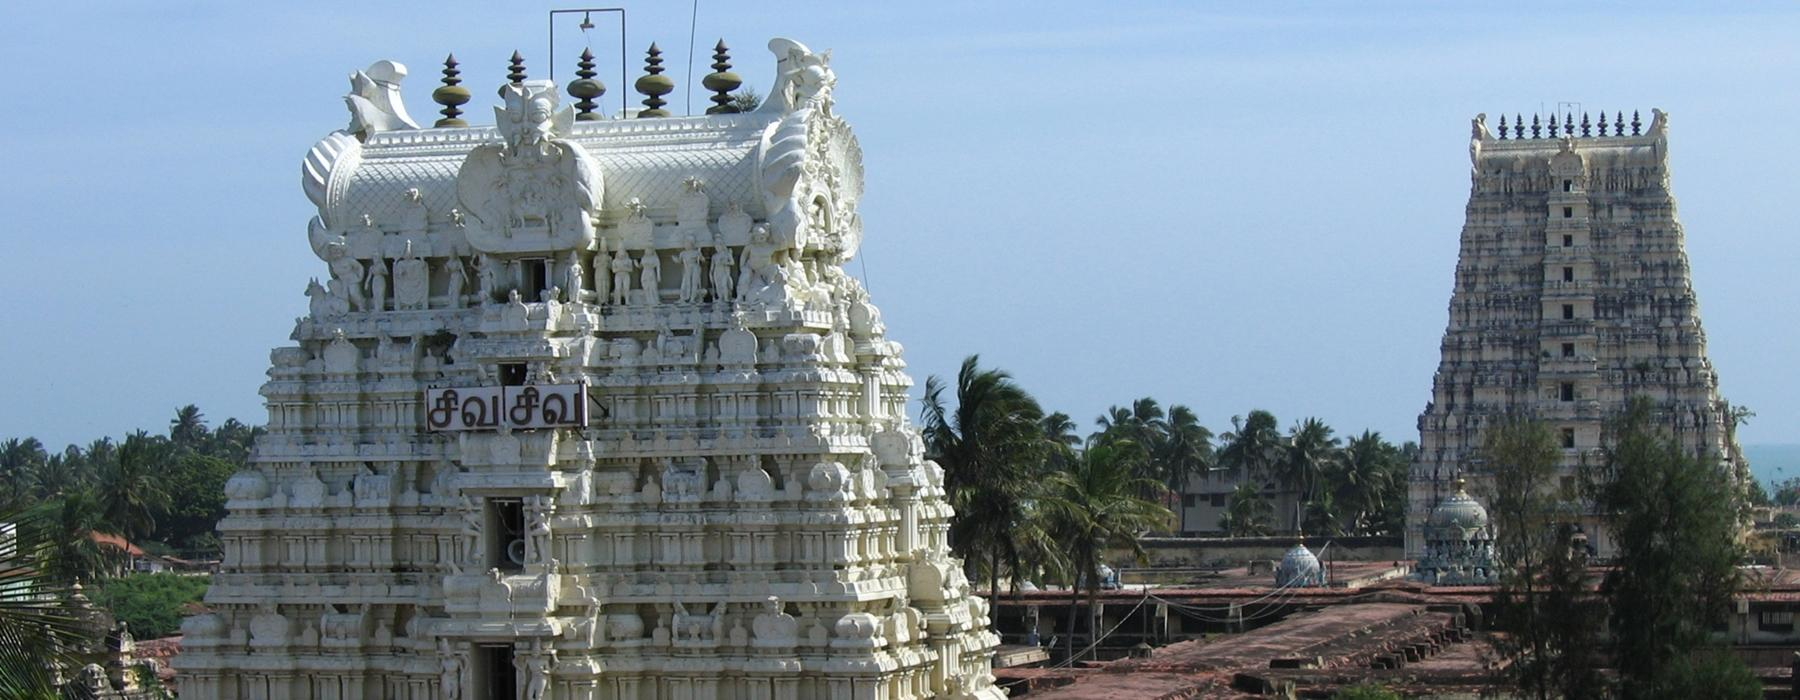 Sri Ramanathaswamy Temple